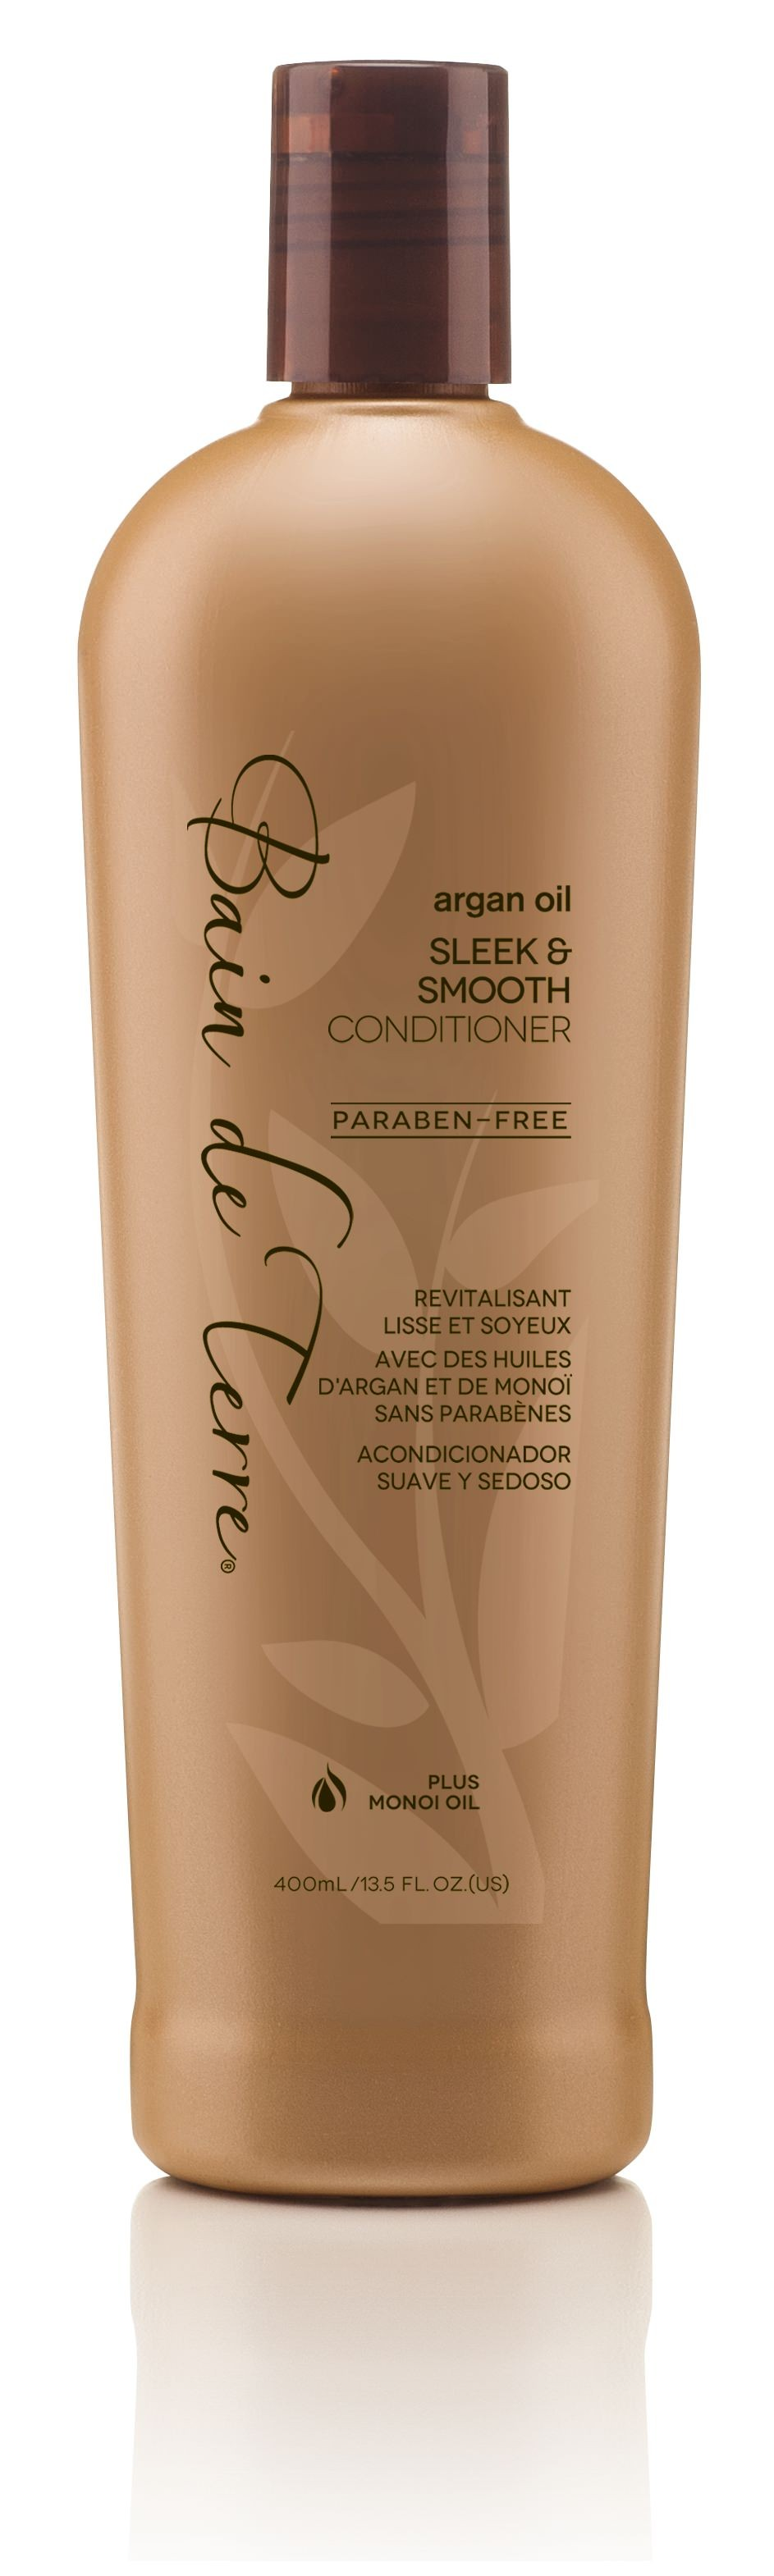 Bain de Terre Argan Conditioner